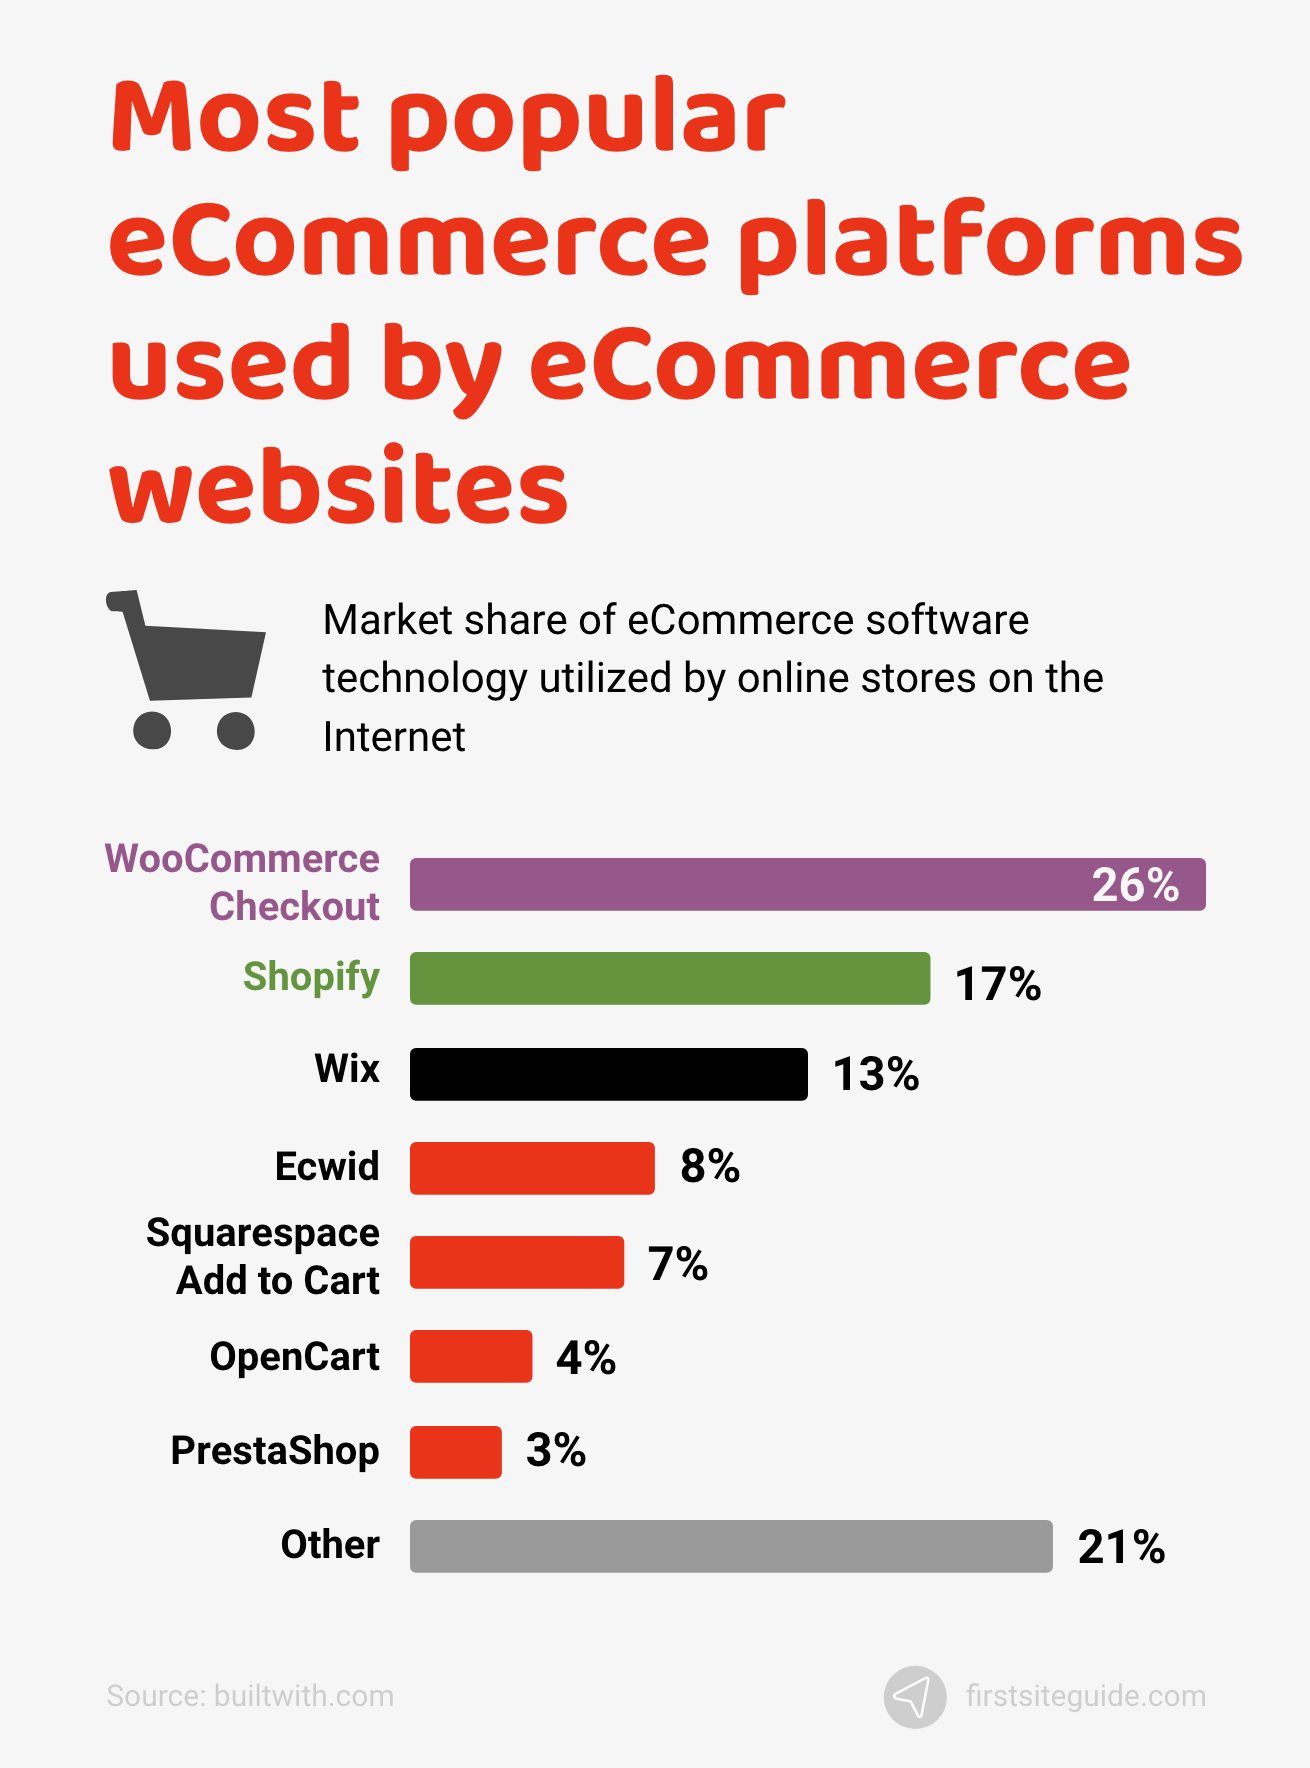 Most popular eCommerce platforms used by eCommerce websites